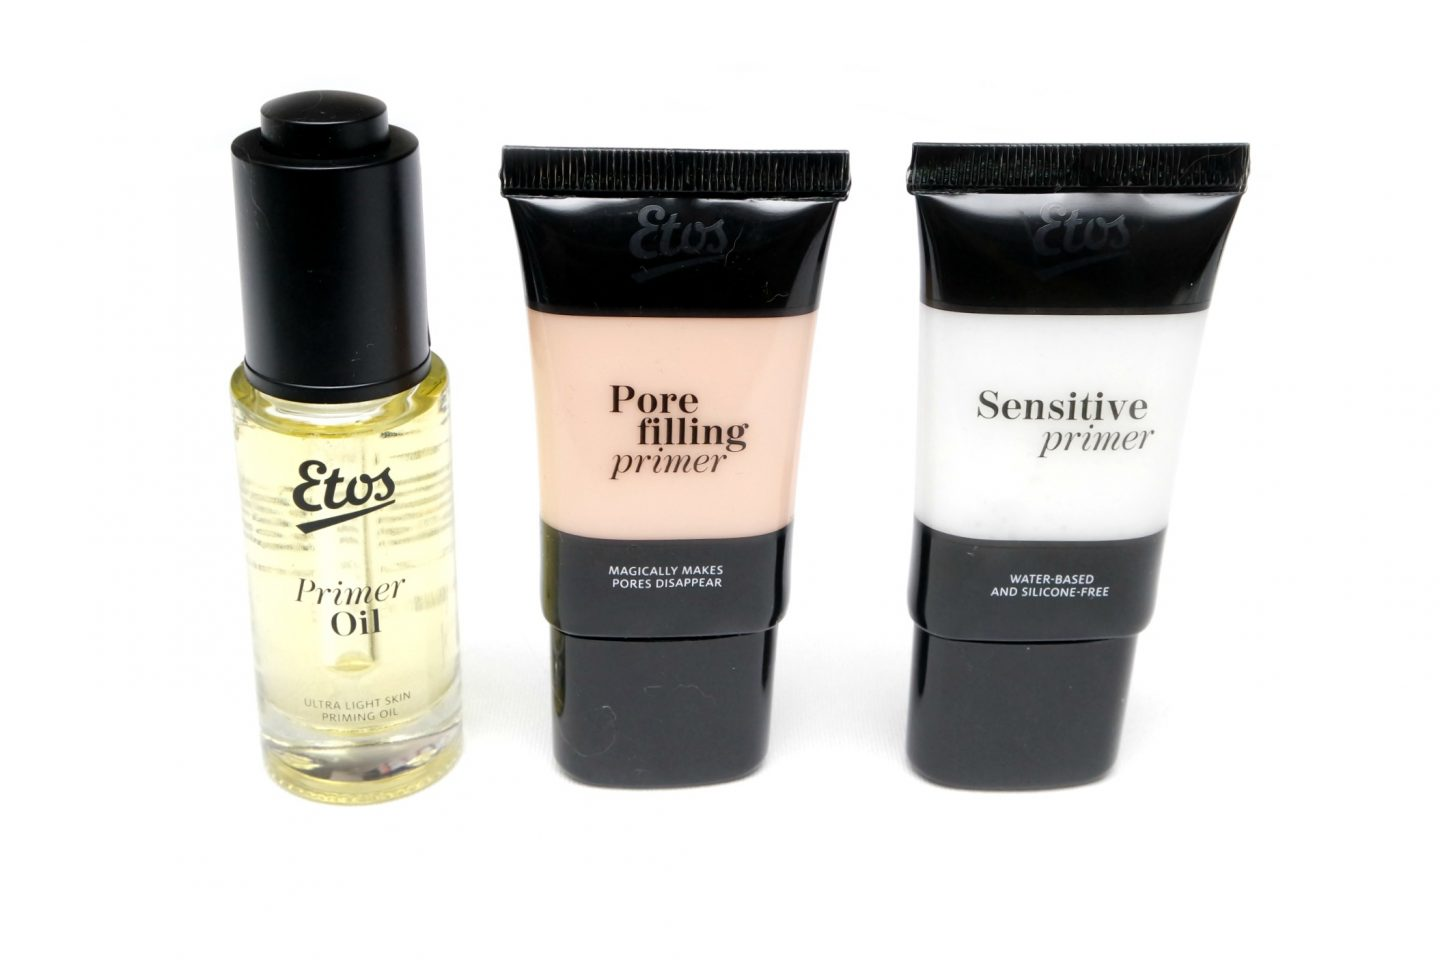 Etos Face Primers Review